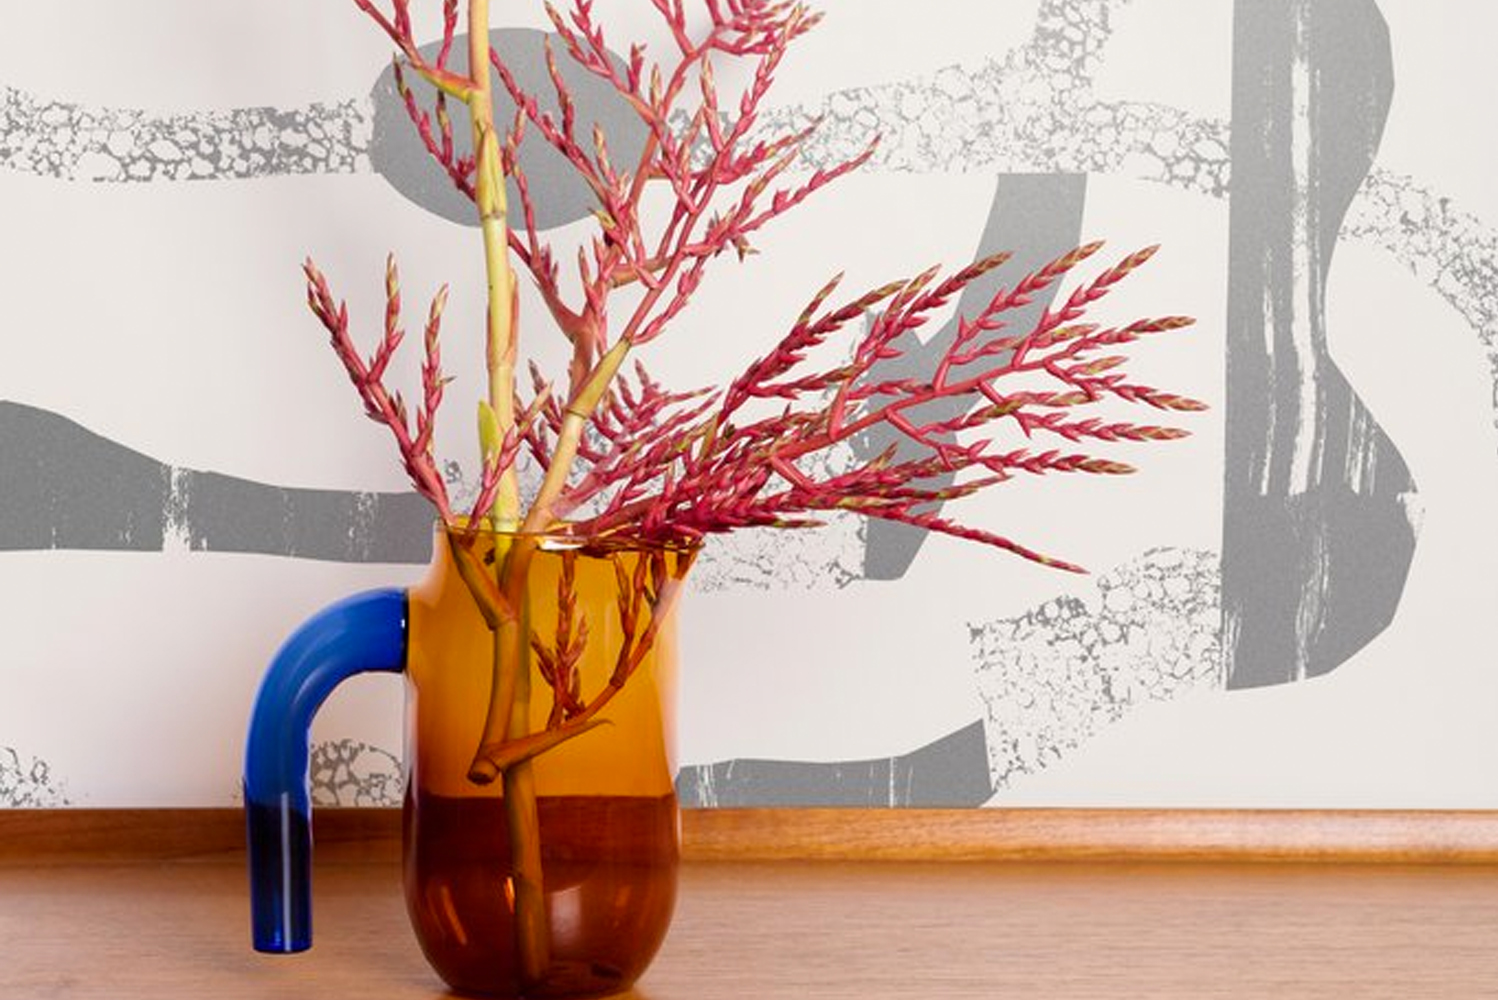 Avery Thatcher, the Portland, Oregon artist behind wallcovering studio Juju Papers, launched Flux.